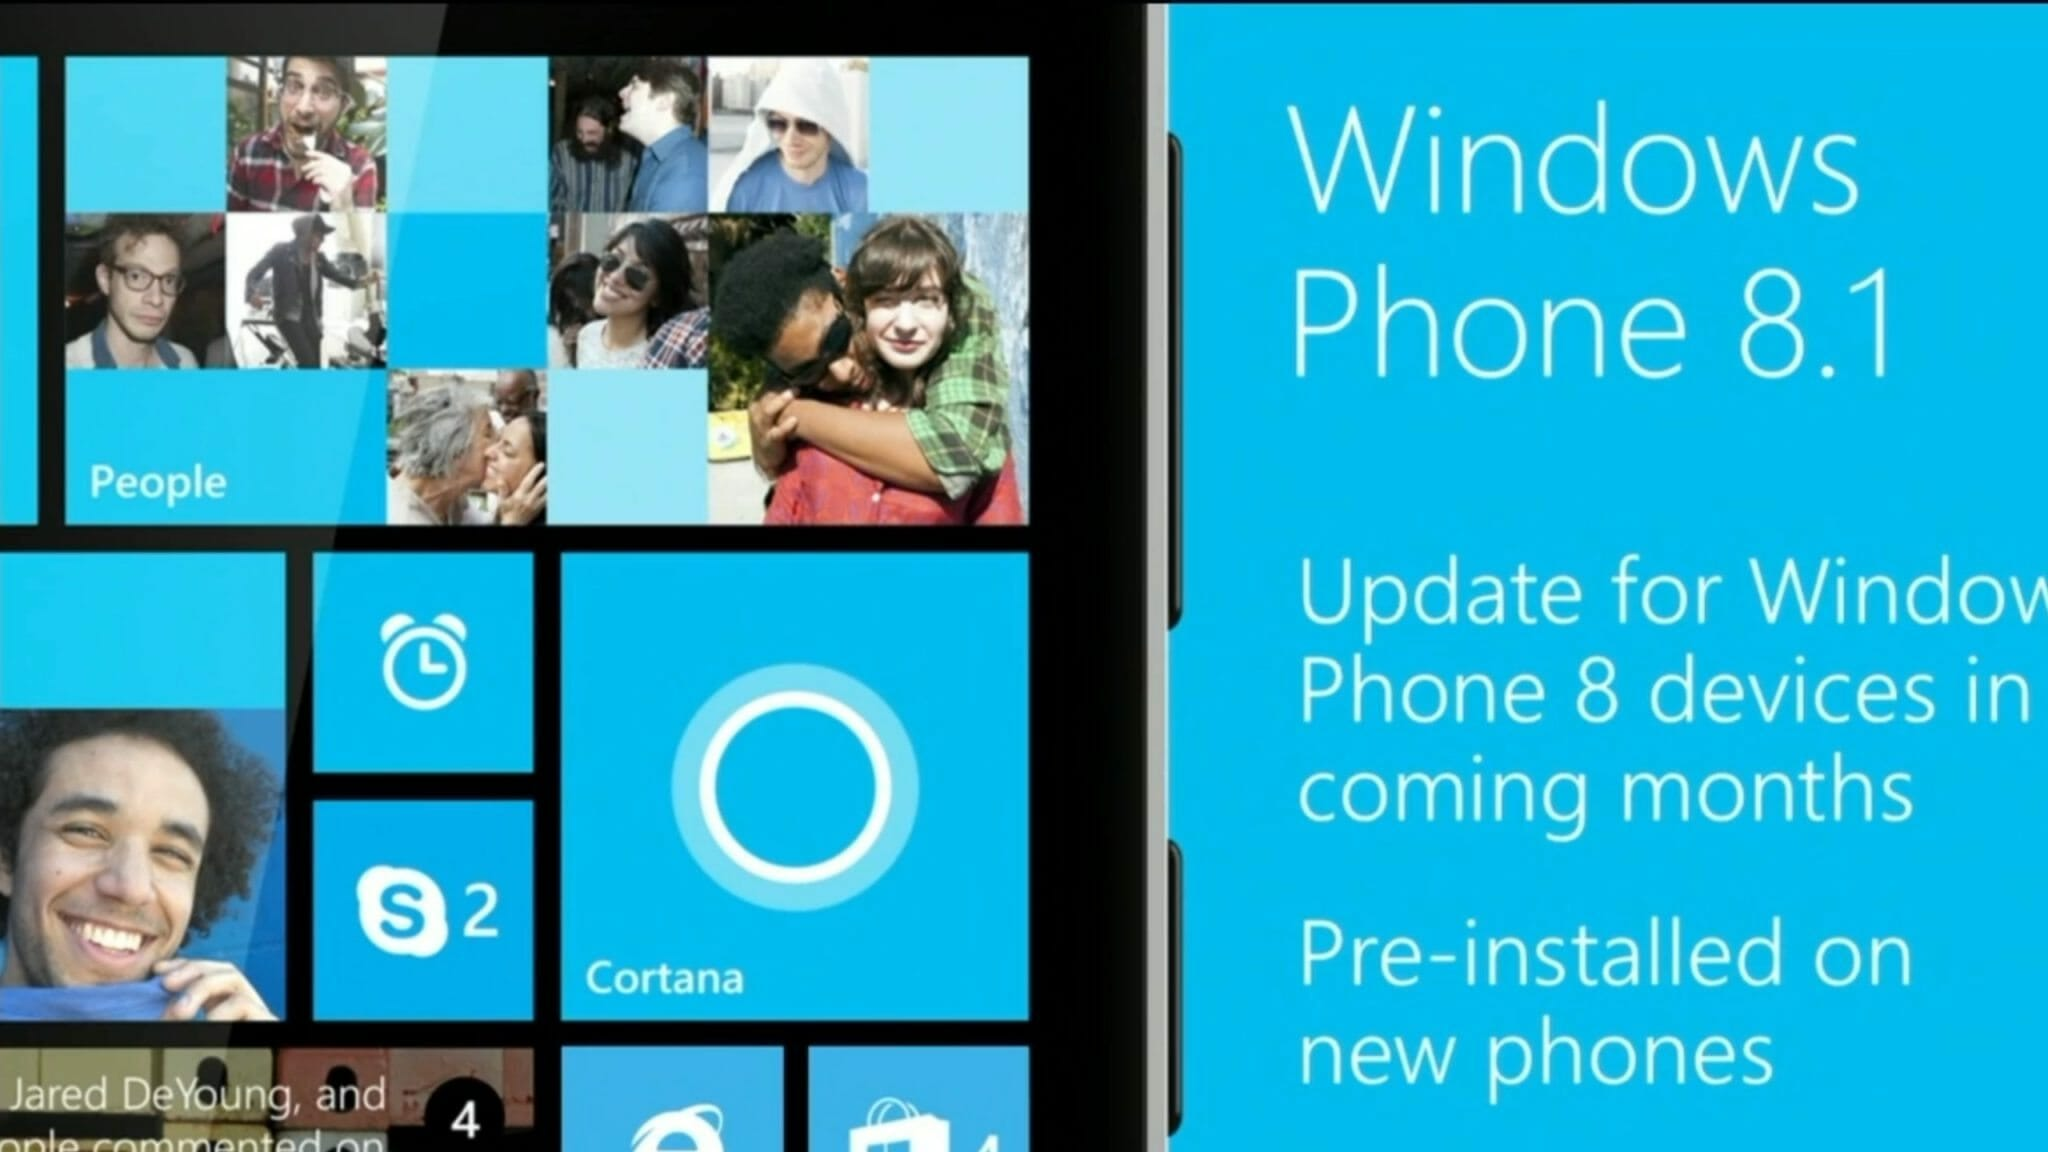 windows phone 8.1 availability - Get Windows Phone 8.1 Update for Developers on 14th April